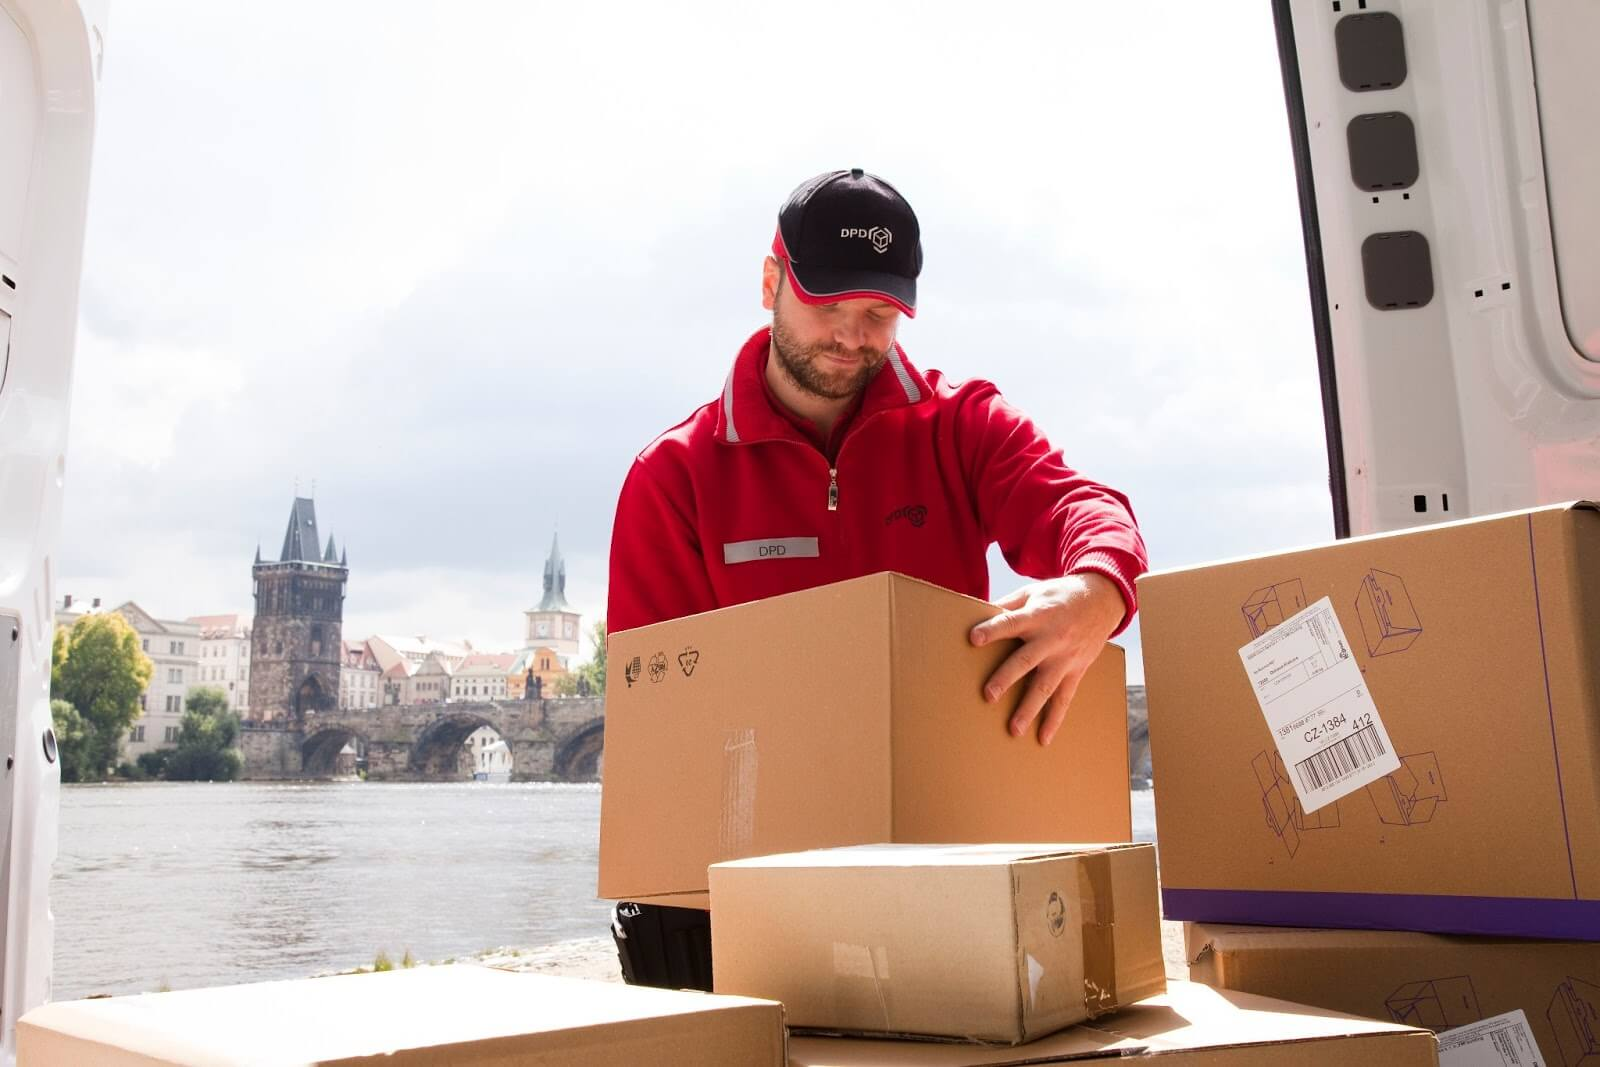 Parcel Delivery jobs and careers on totaljobs. Find and apply today for the latest Parcel Delivery jobs like Driving, Warehouse, Mail and more. We'll get you noticed.